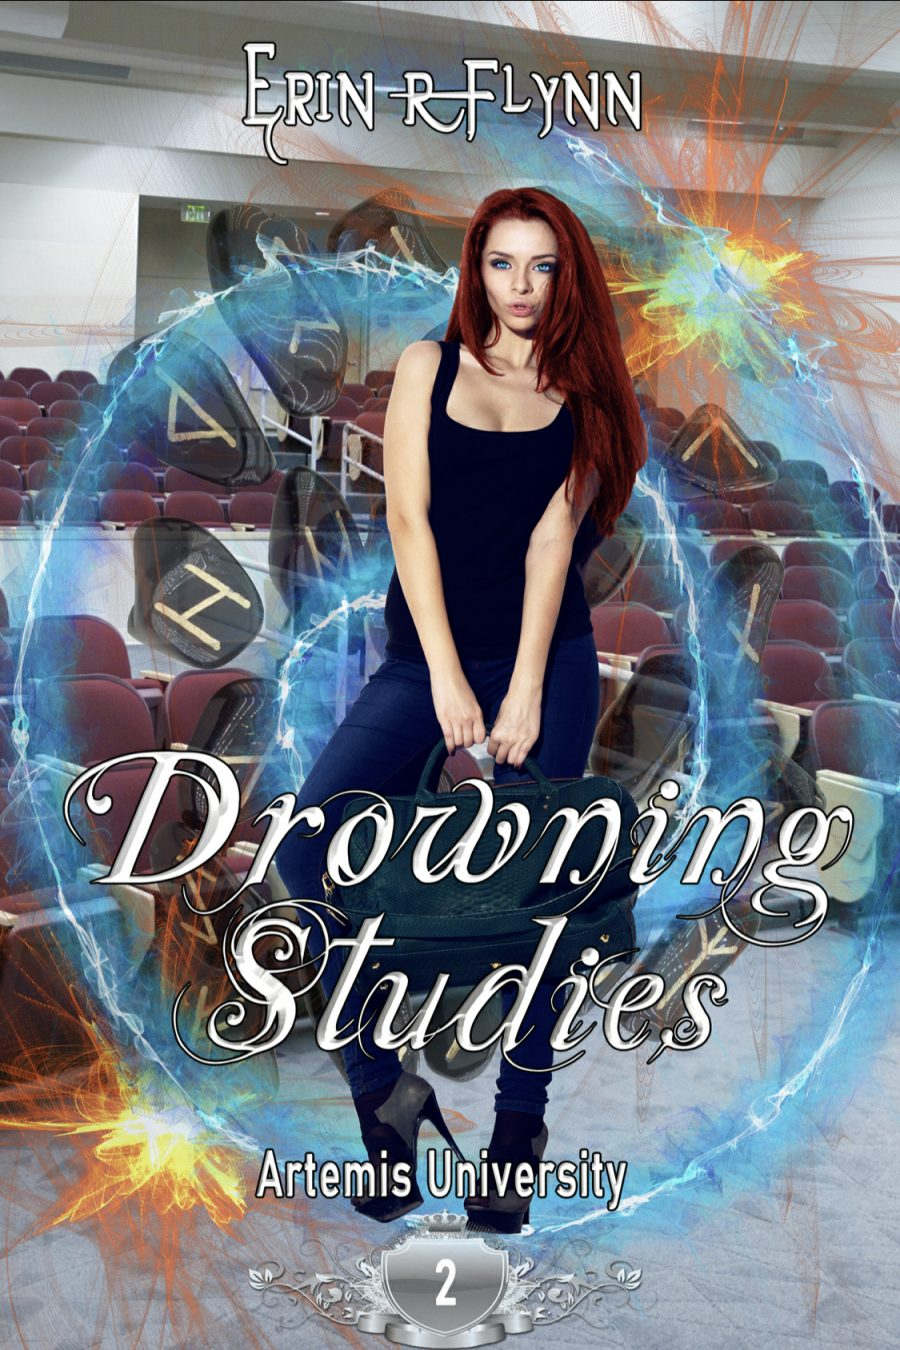 Drowning Studies (Artemis University - Book 2) by Erin R. Flynn - A Book Review #BookReview #Academy #SlowBuild #MediumBurn #RH #4Stars #KindleUnlimited #KU